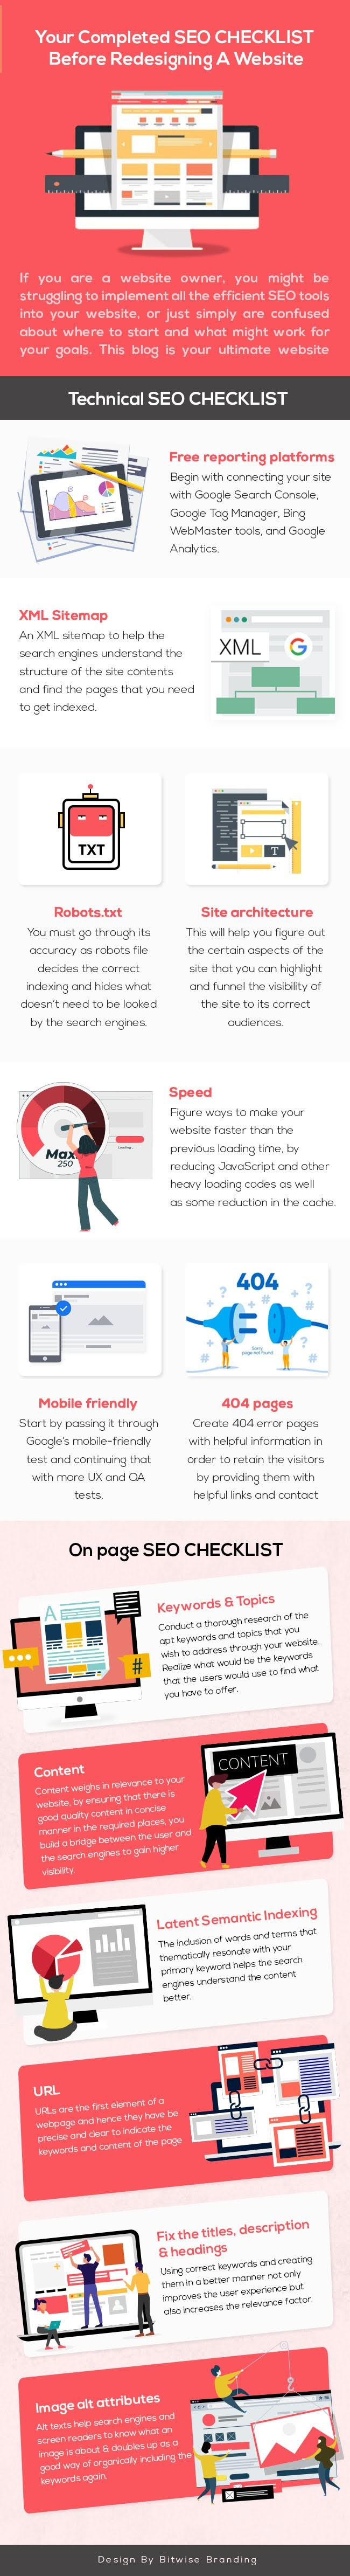 Technical SEO Checklist Before Redesigning a Website #infographic